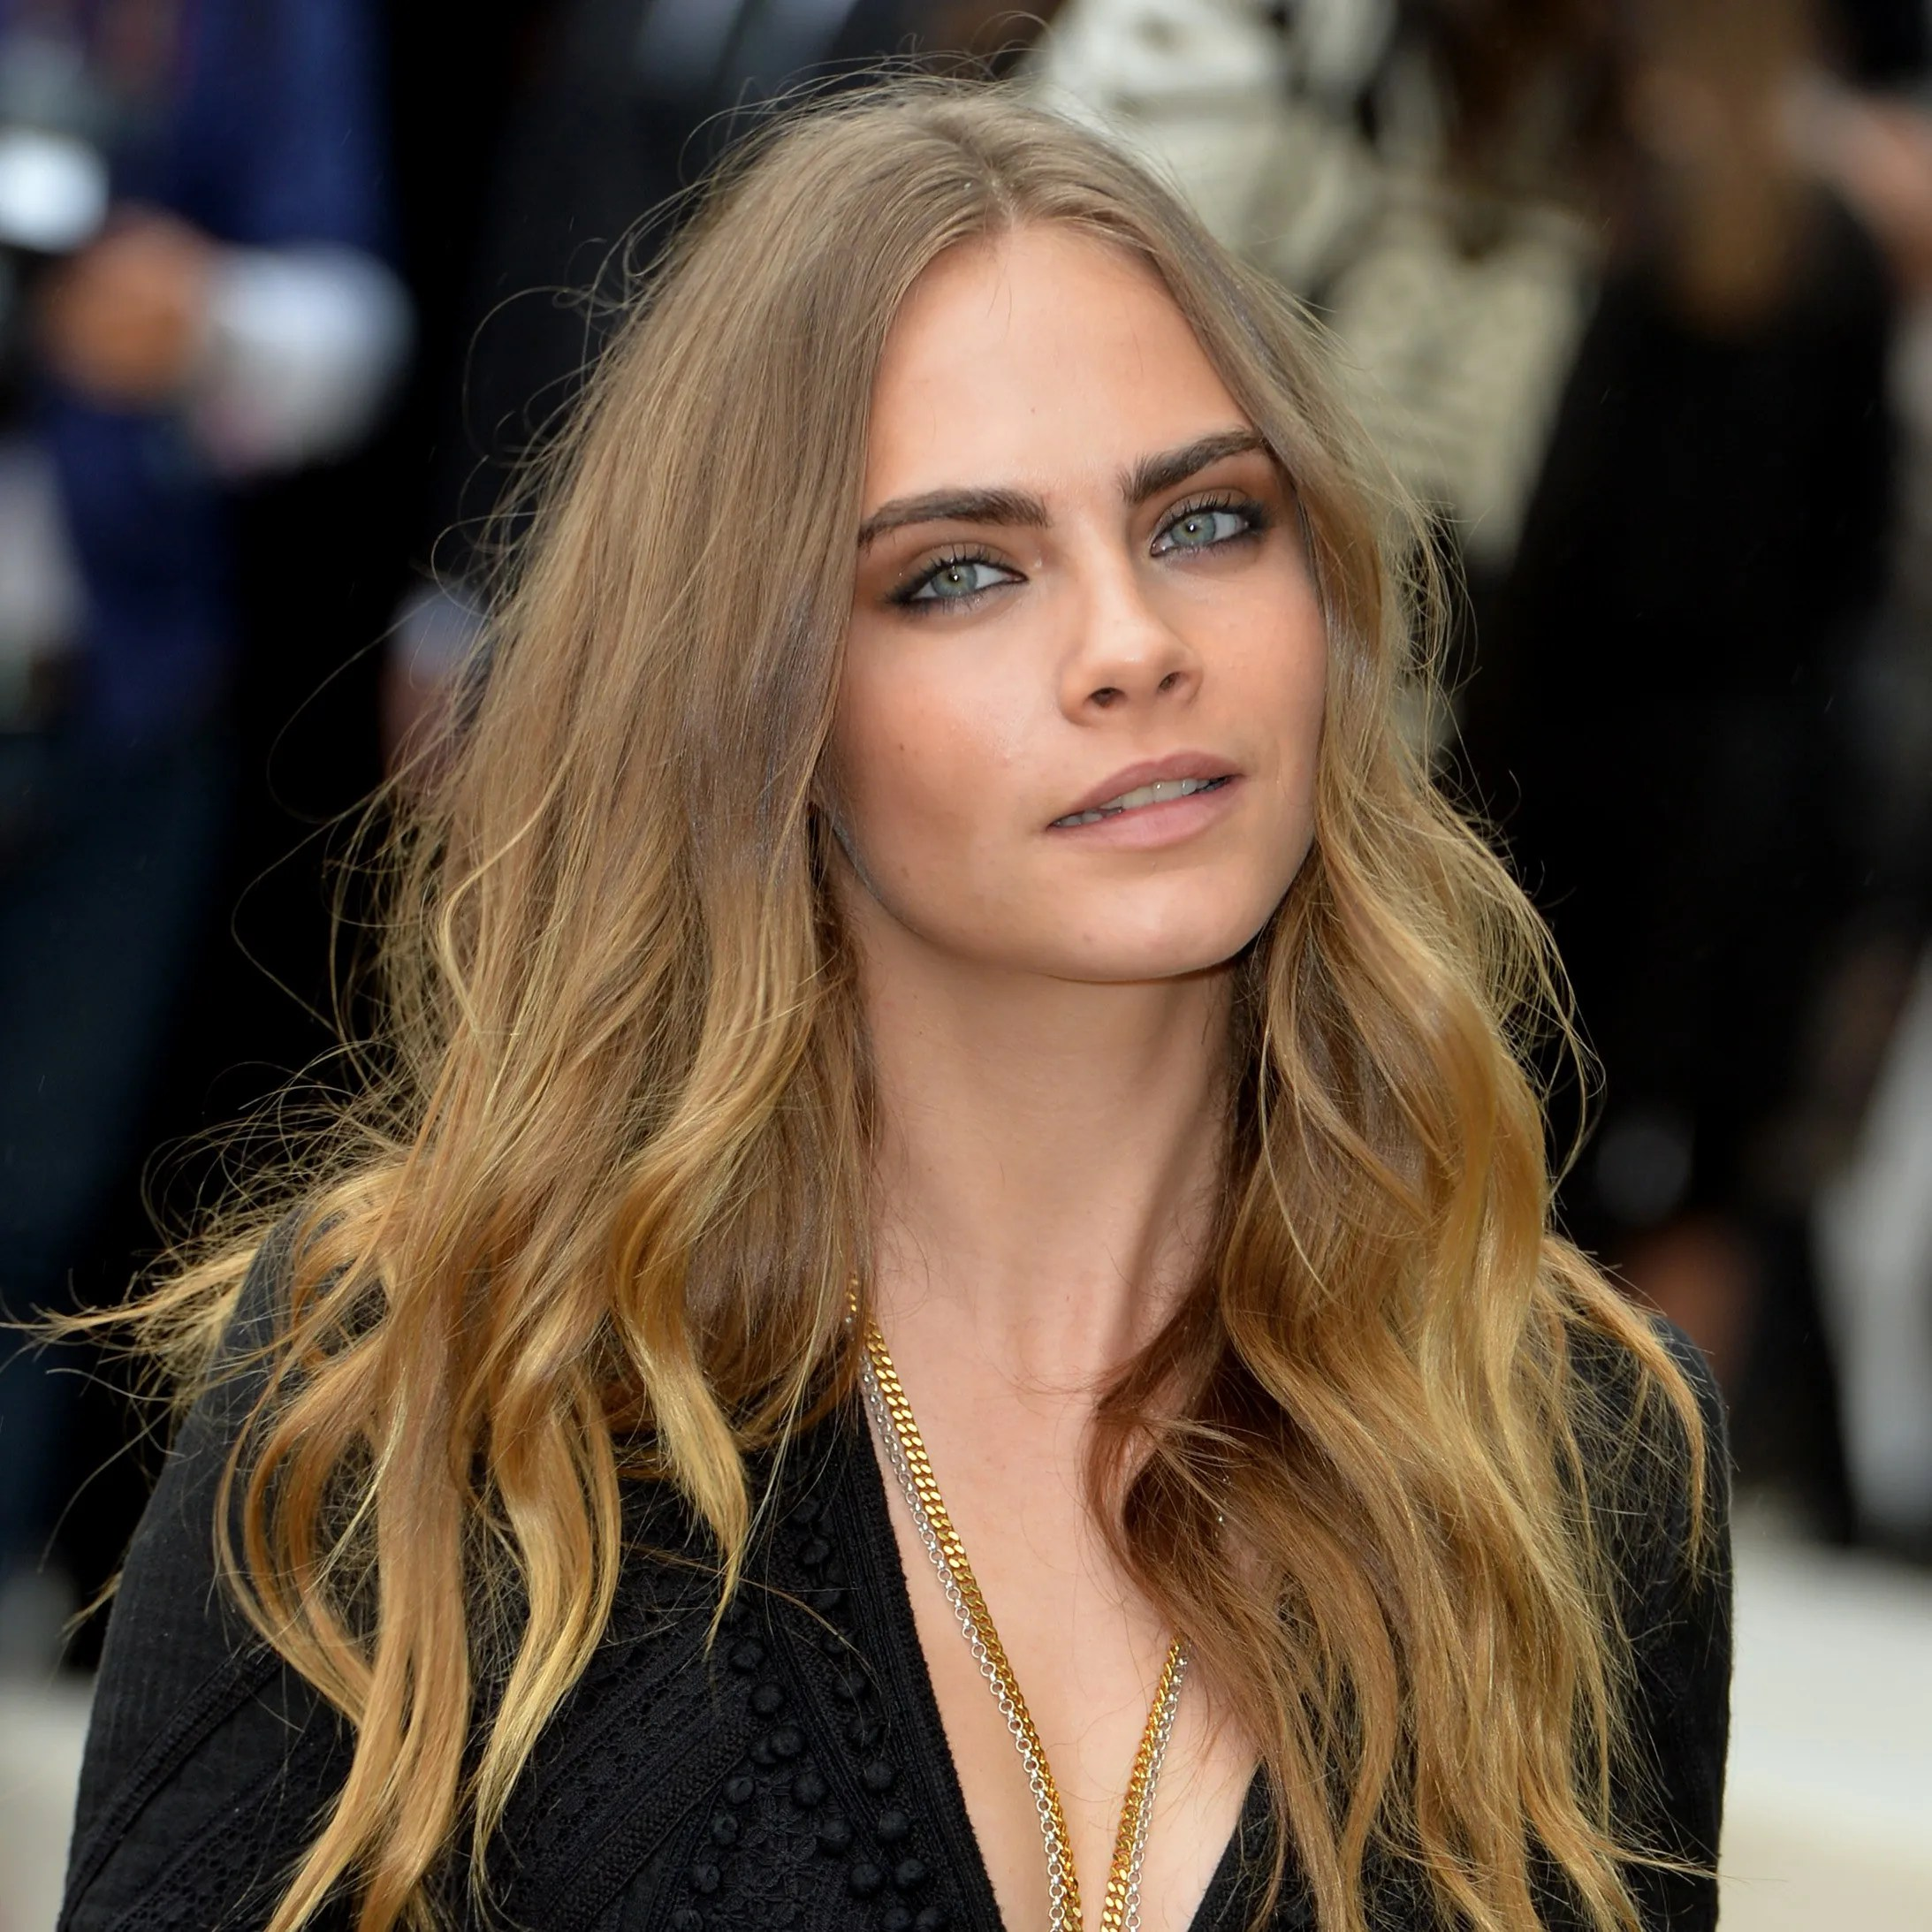 Here's Your FIRST LOOK At Cara Delevingne's Awesome New Short